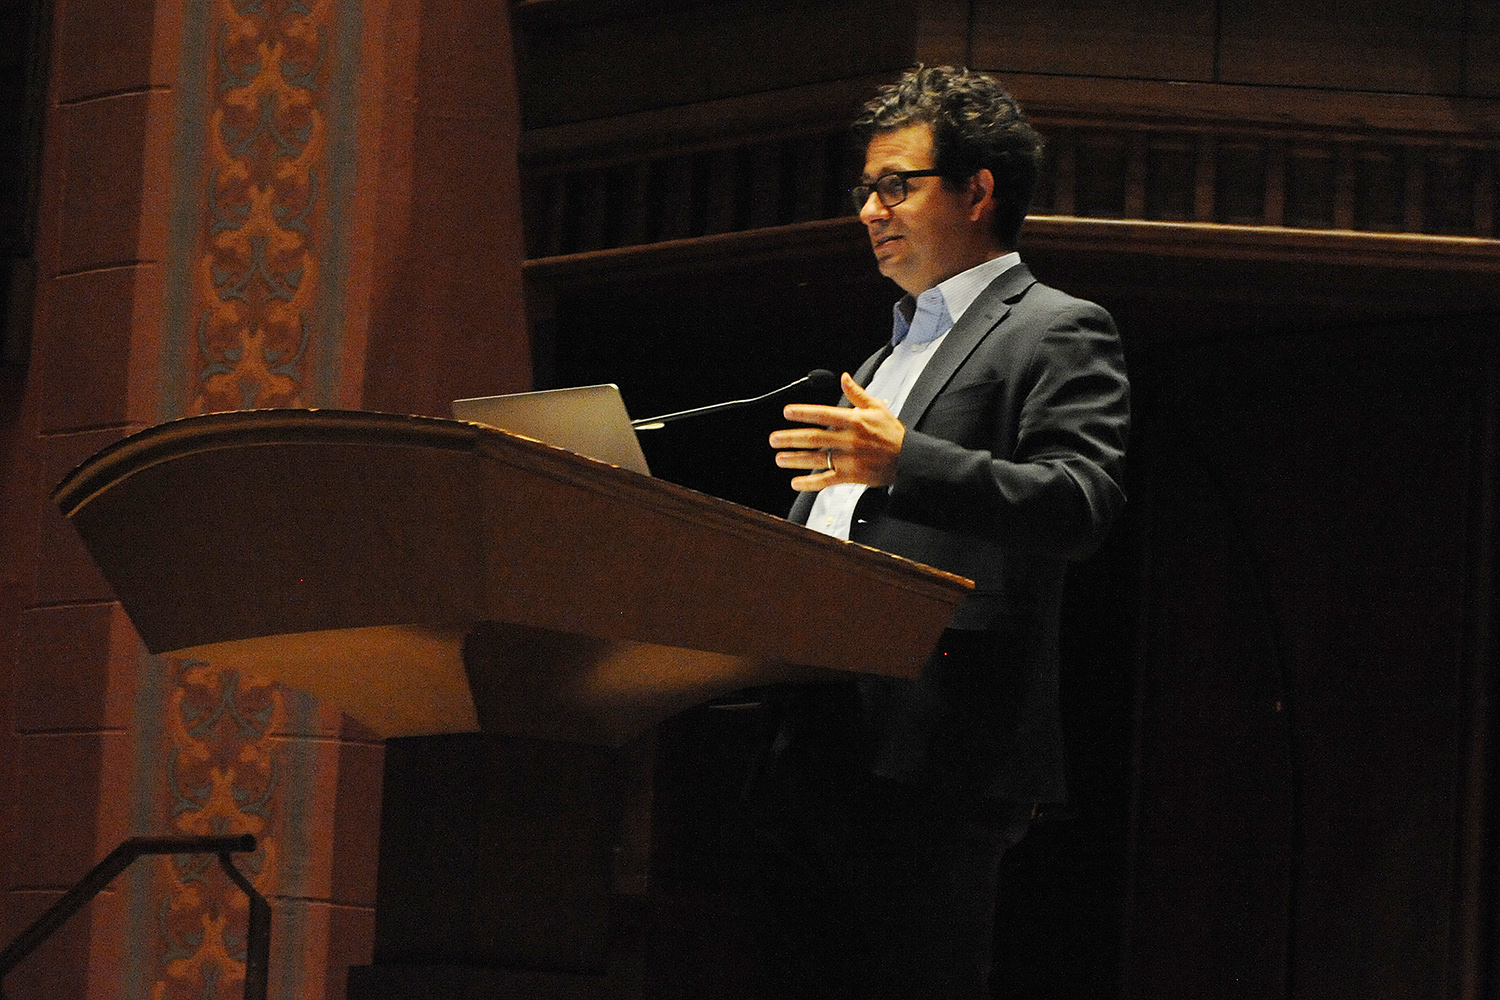 Michael Romano '94 delivered the keynote address at the Shasha Seminar Oct. 14 in Memorial Chapel.